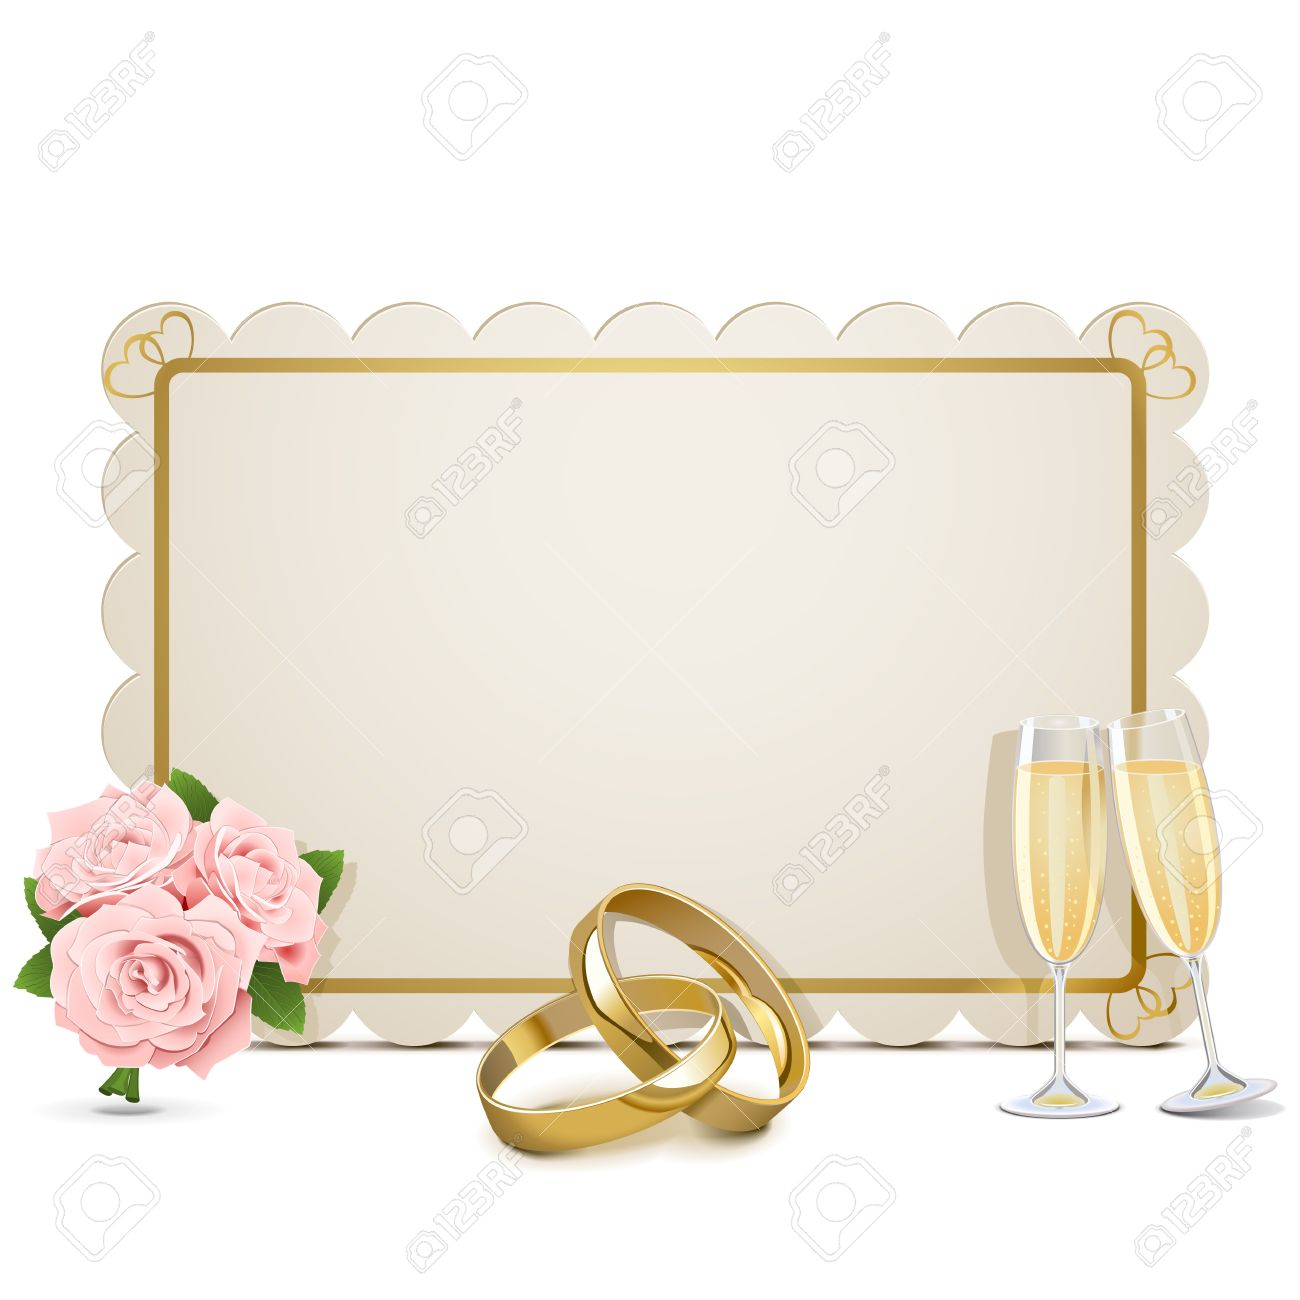 Wedding Frame isolated on white background